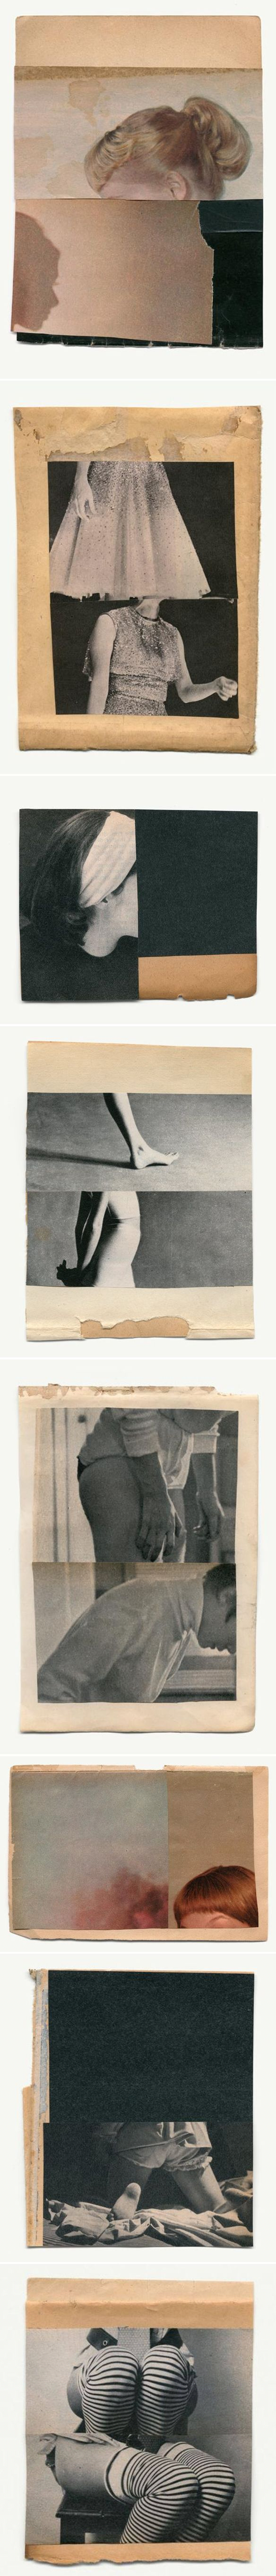 Katrien de Blauwer developed her collage practice while studying fashion but later it became her full focus. She creates fairly simple compositions from found photography and magazine cuttings, usually juxtaposing just one or two images to create an ambiguous narrative.